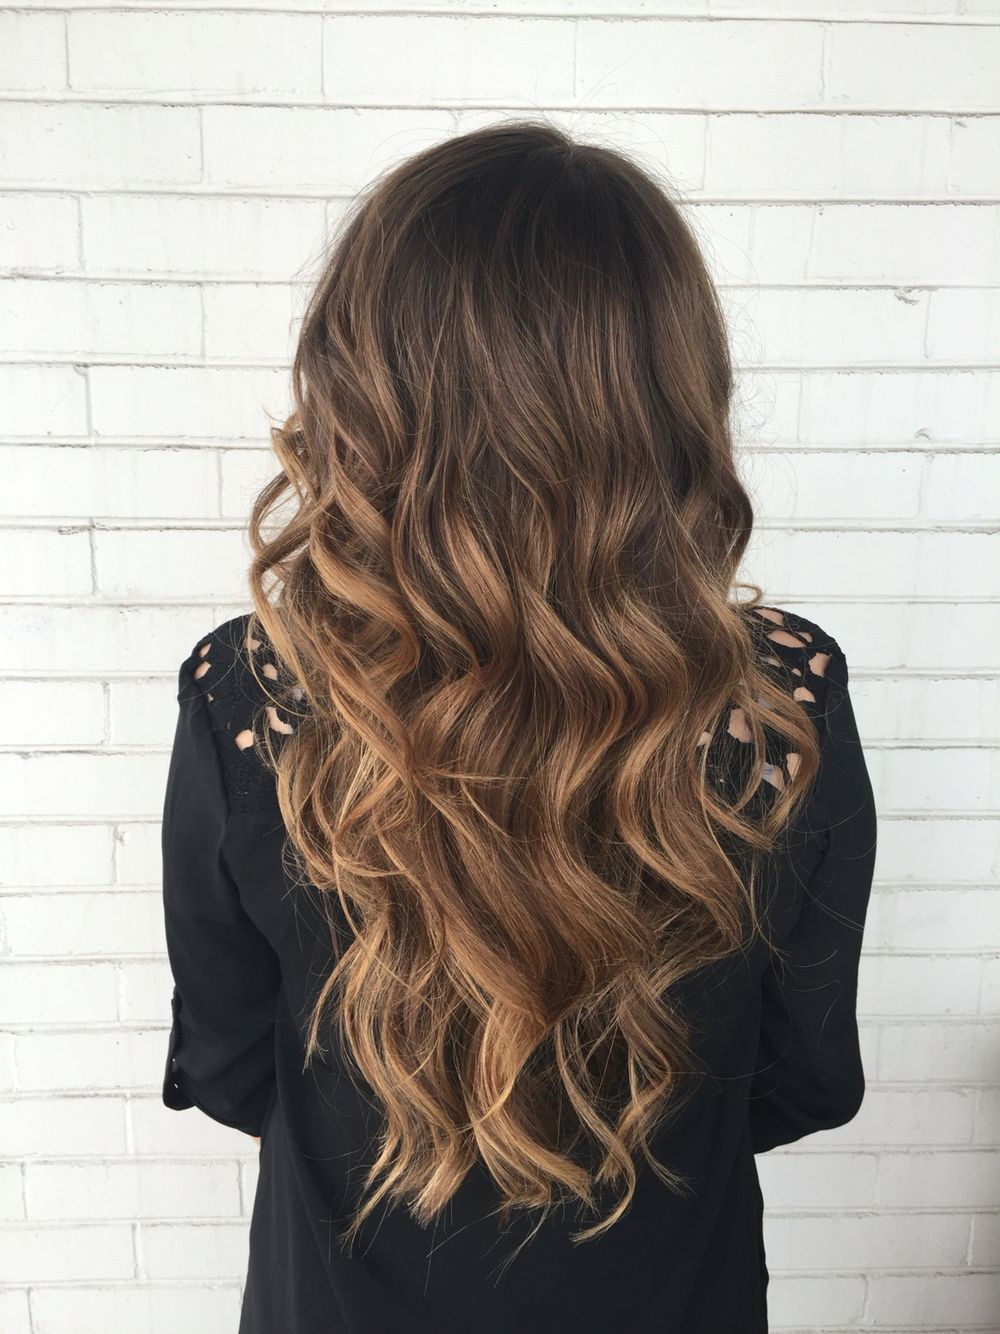 Caramel Mocha. Balayaged her hair to add light and